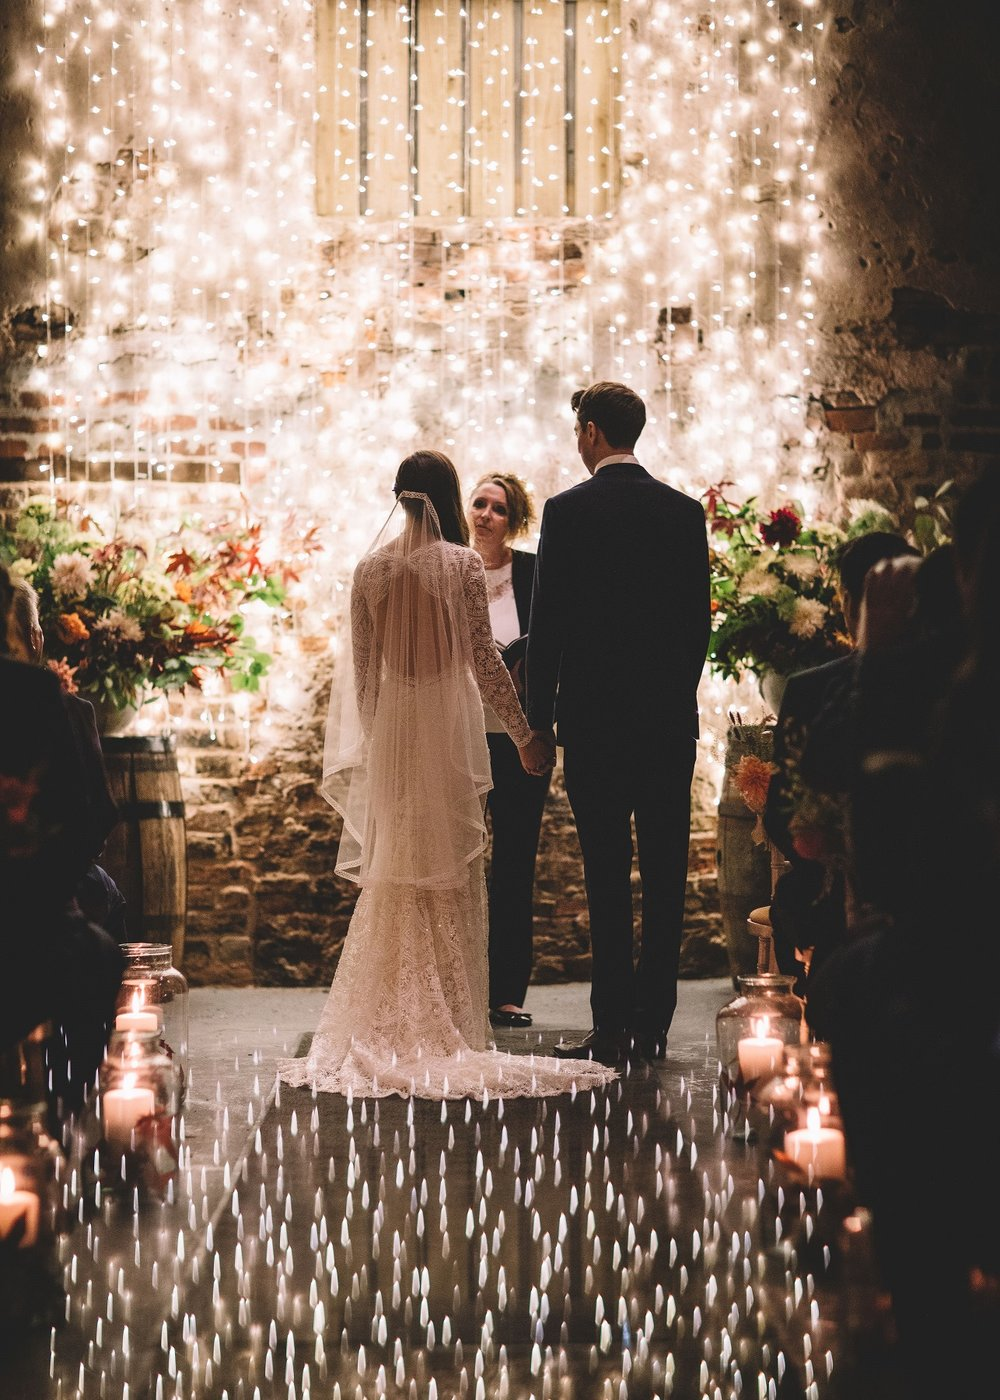 Rachel & Andrew by Lumiere Photographic - bride and groom sparkling in the Ceremony Barn.jpg